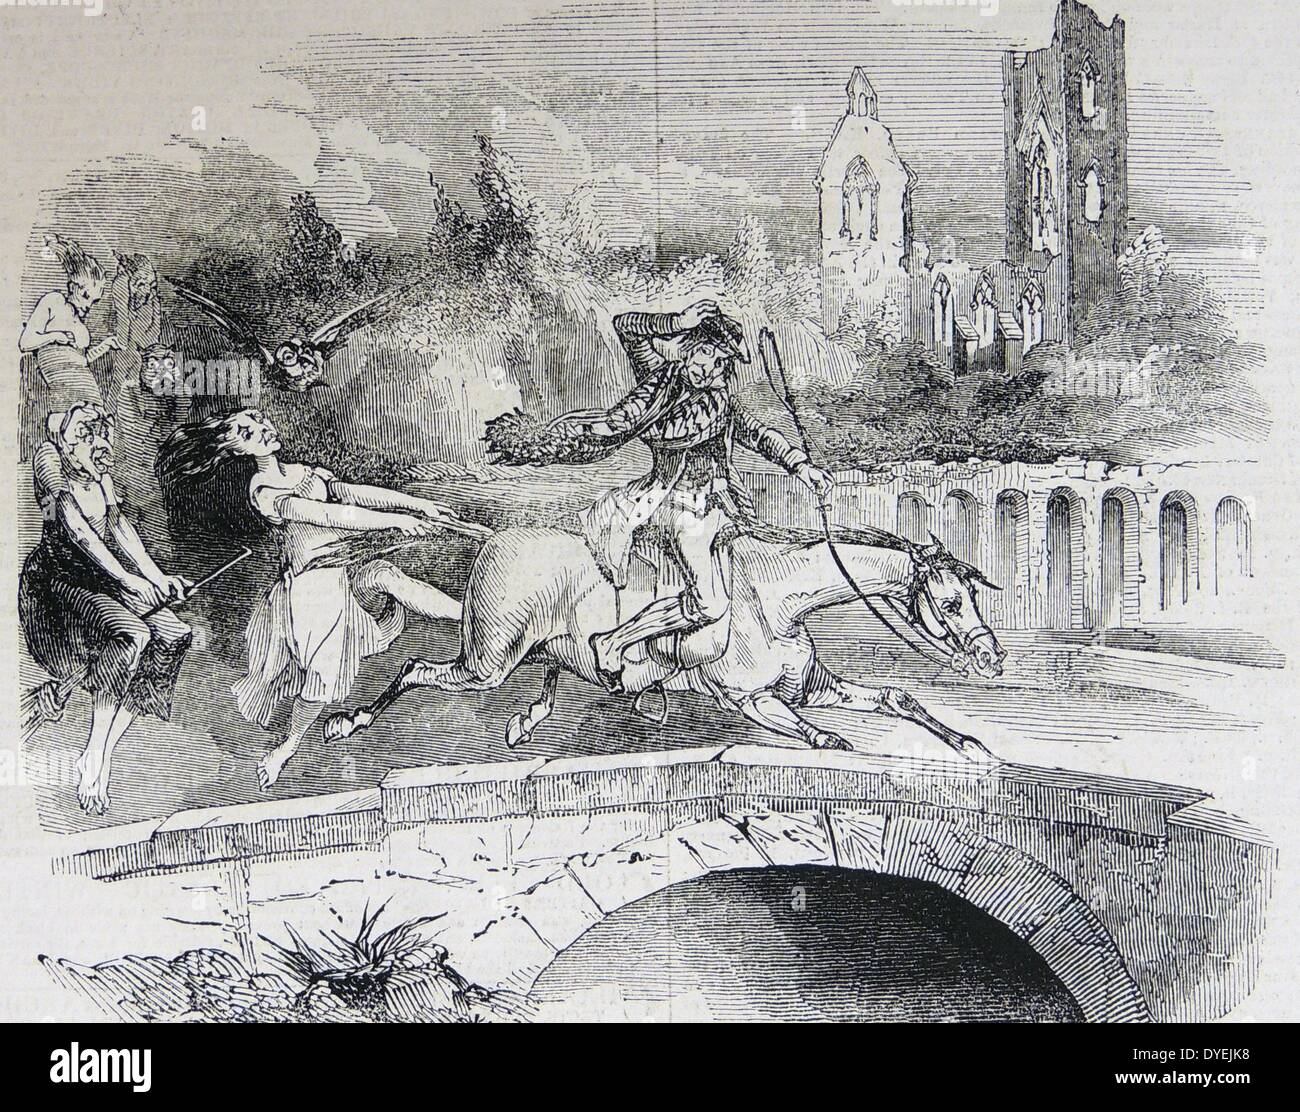 Witches chasing Tam 0'Shanter and his mare - Stock Image